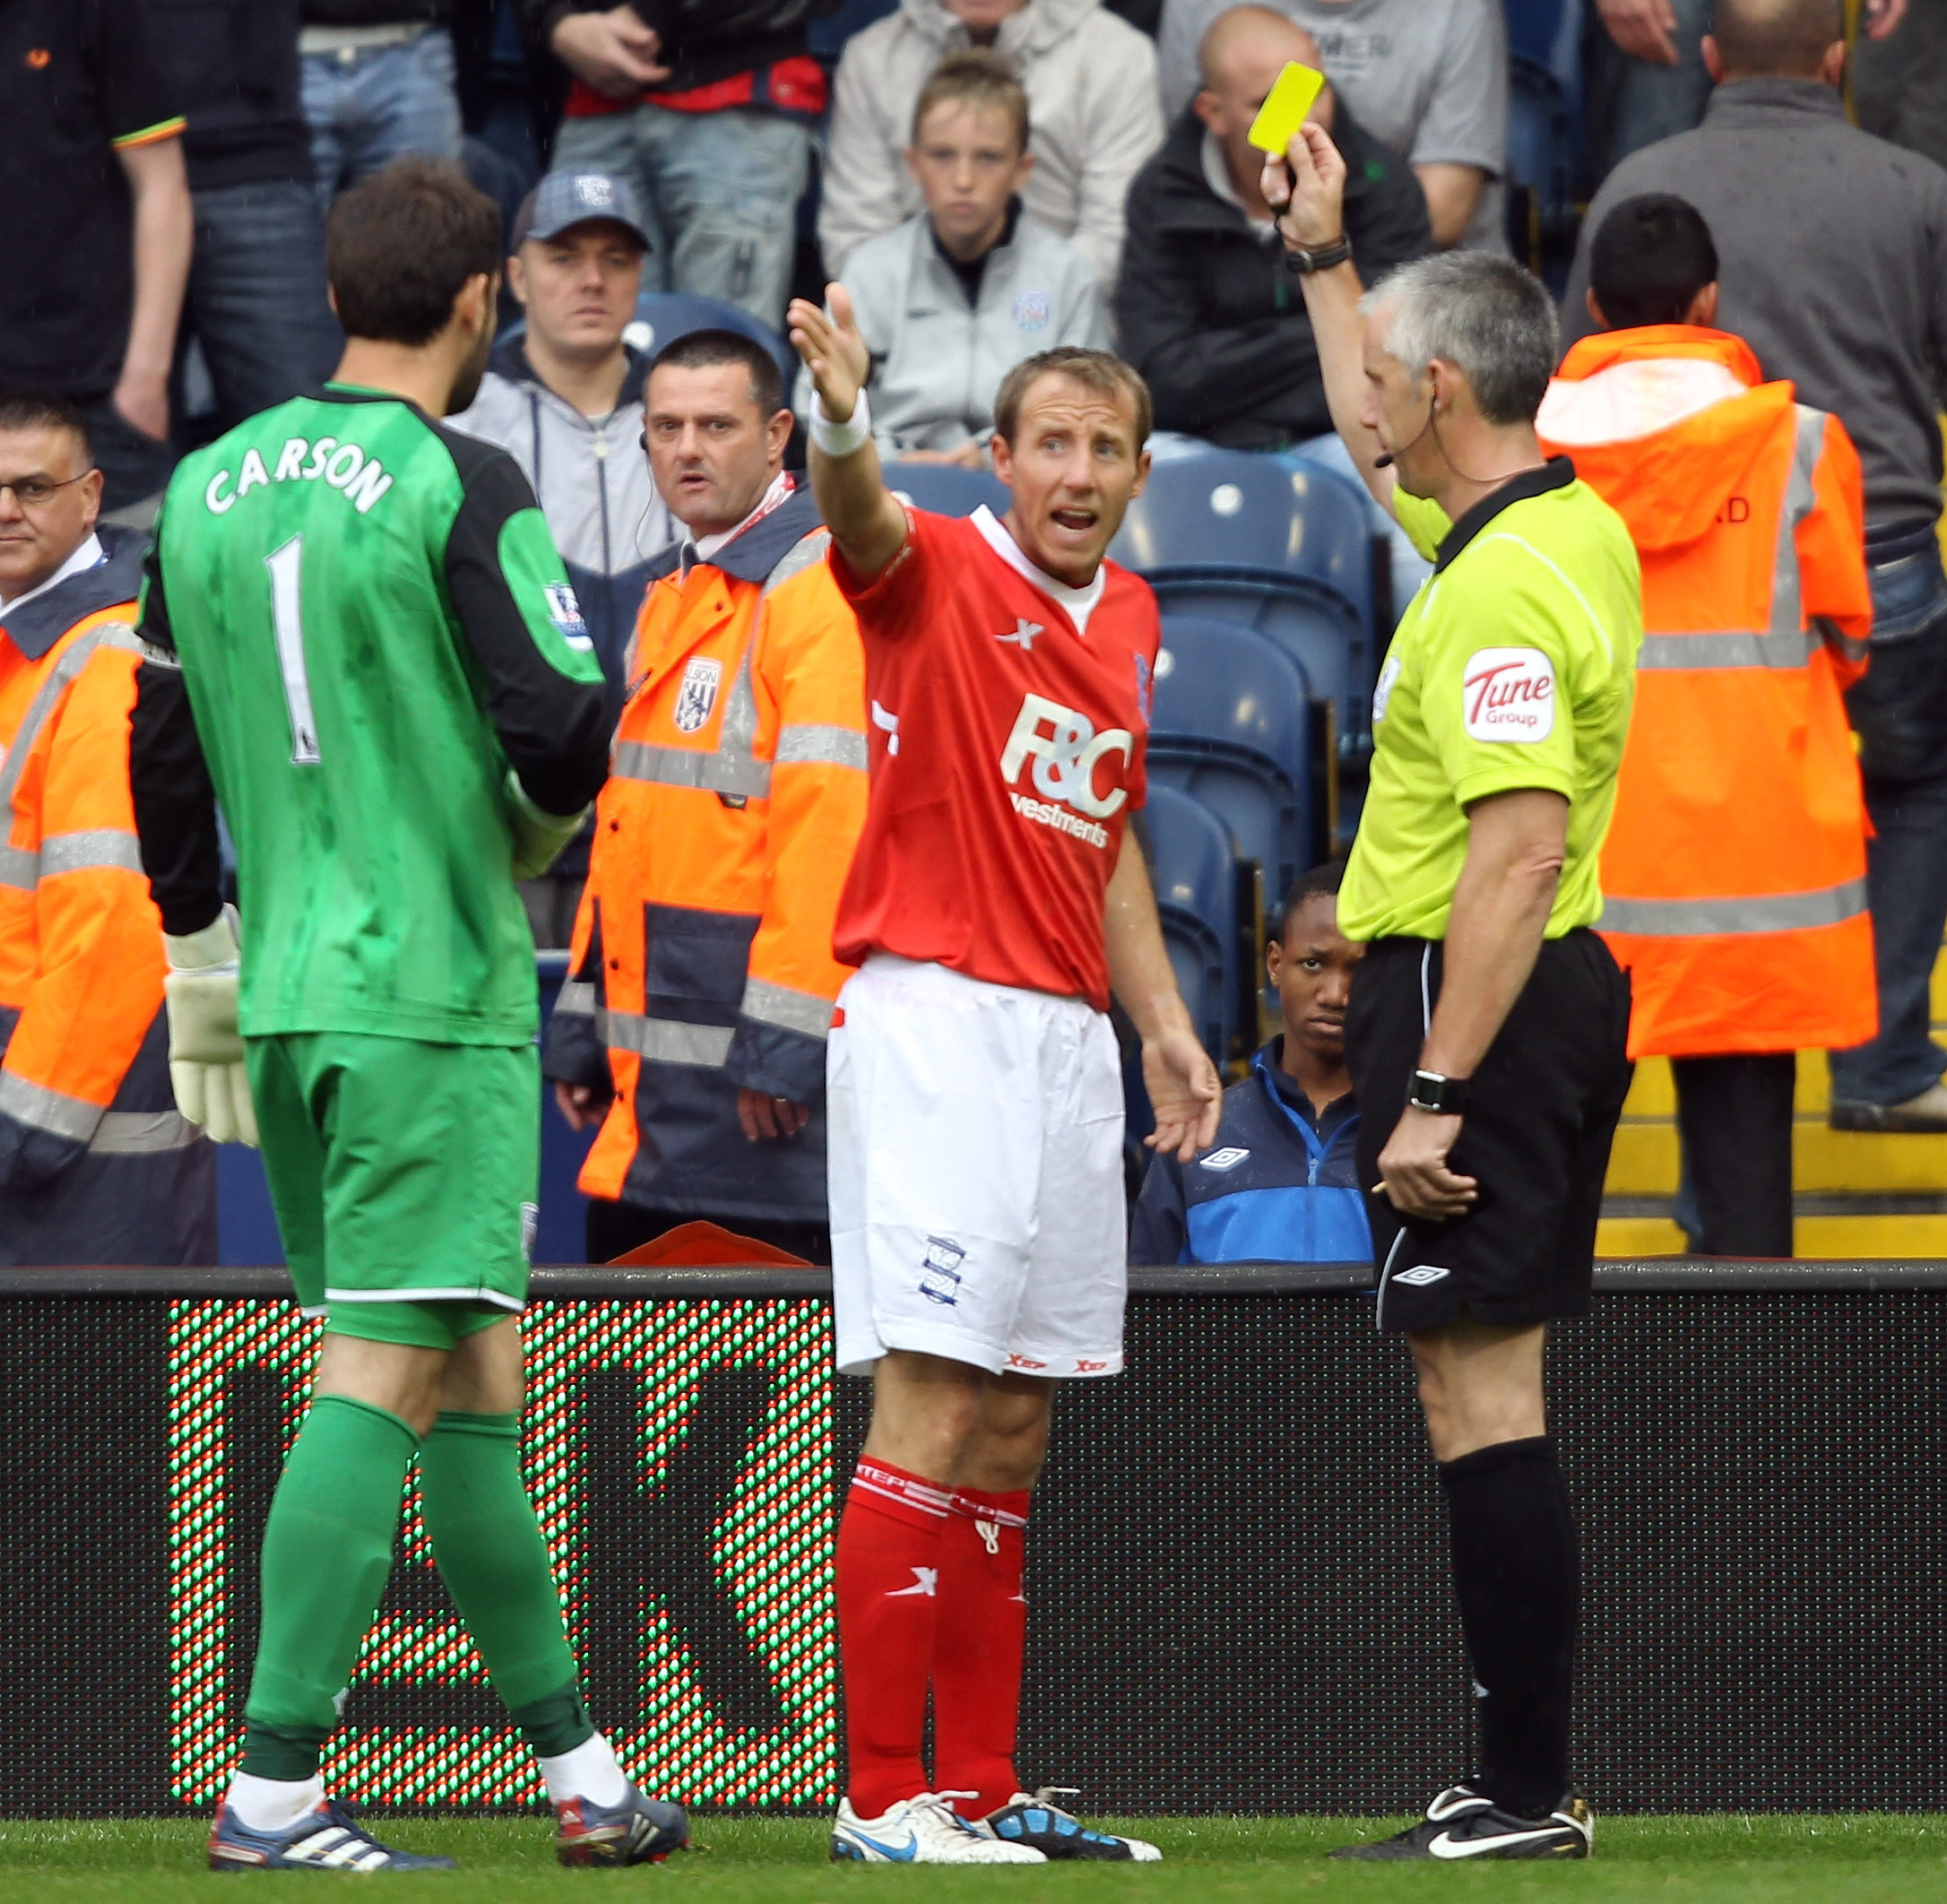 WEST BROMWICH, ENGLAND - SEPTEMBER 18:   Lee Bowyer of Birmingham is given a yellow card during the Barclays Premier League match between West Bromwich Albion and Birmingham City at The Hawthorns on September 18, 2010 in West Bromwich, England.  (Photo by